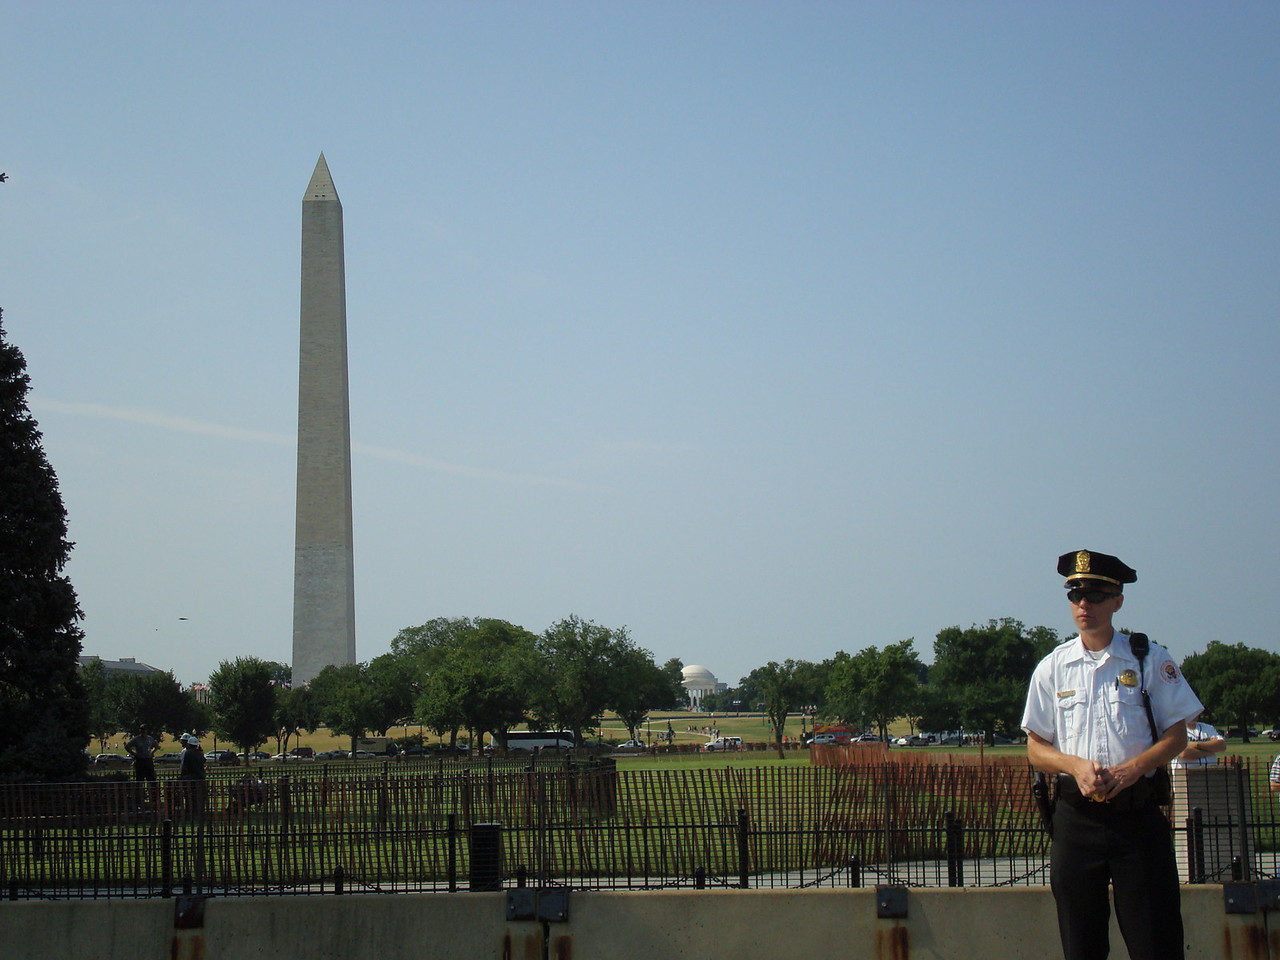 Washington Monument from in front of the White House